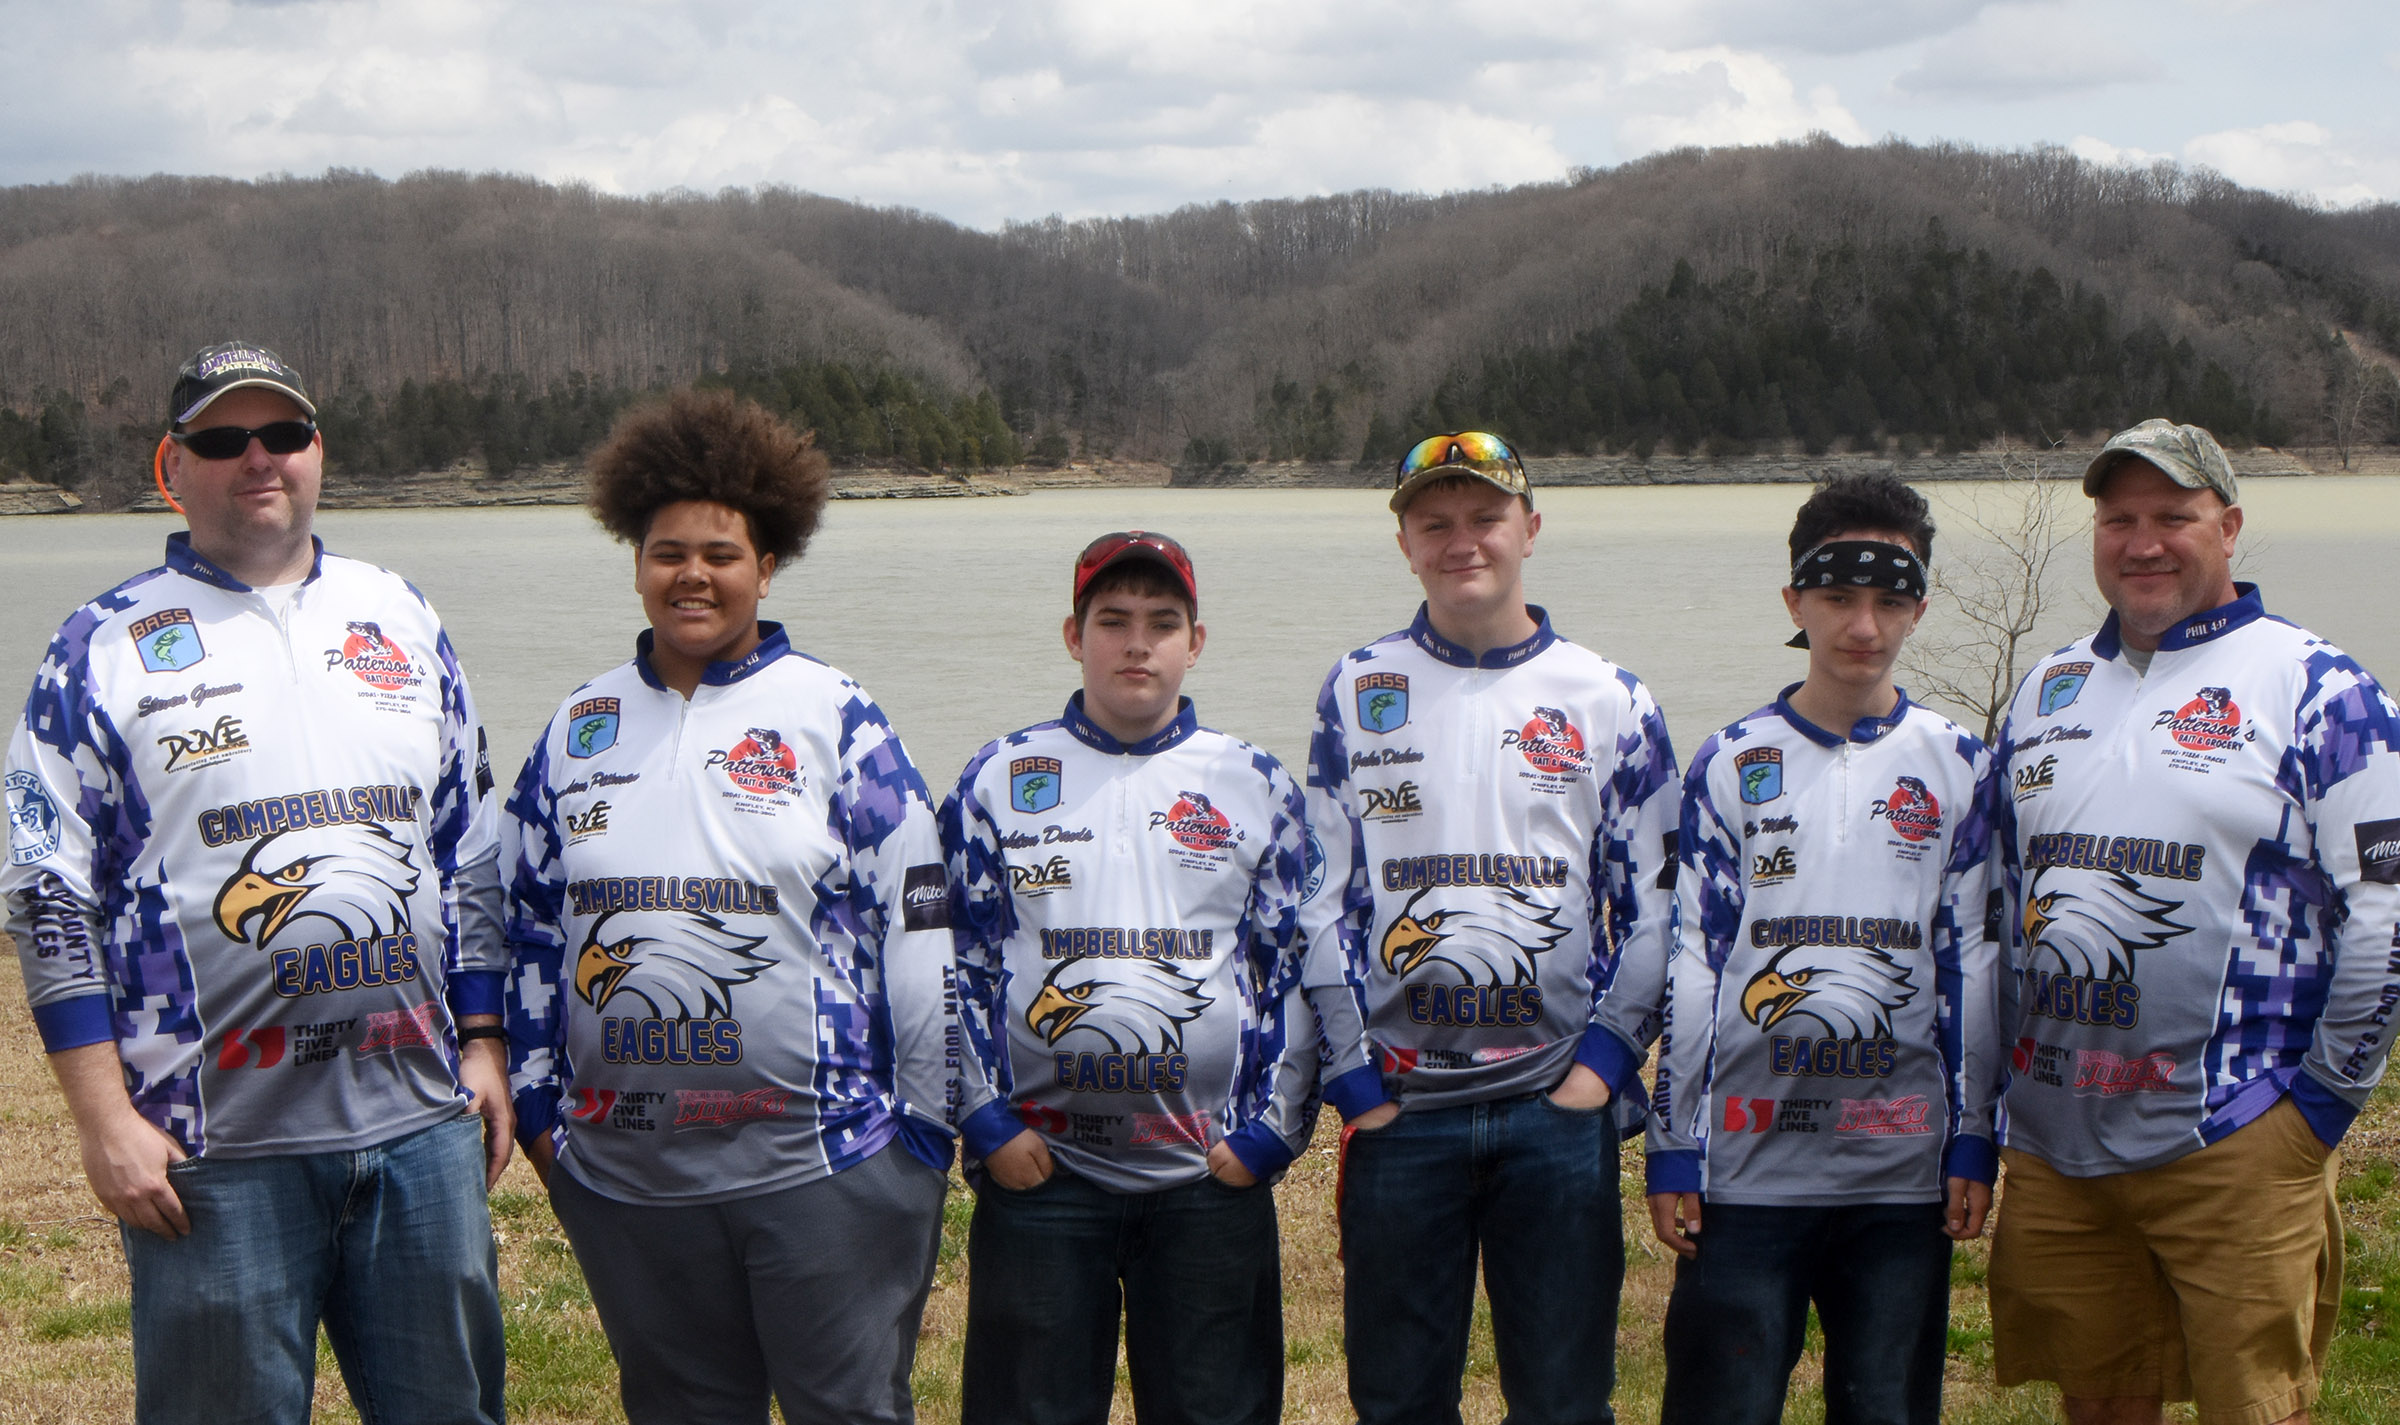 CHS fishing team members who recently competed at Green River Lake are, from left, boat captain and CMS teacher Steven Gumm, freshman Brandon Pittman, seventh-grader Ashton Davis, eighth-grader Levi Dicken, seventh-grader Chris Milby and boat captain and fishing coach Richard Dicken.